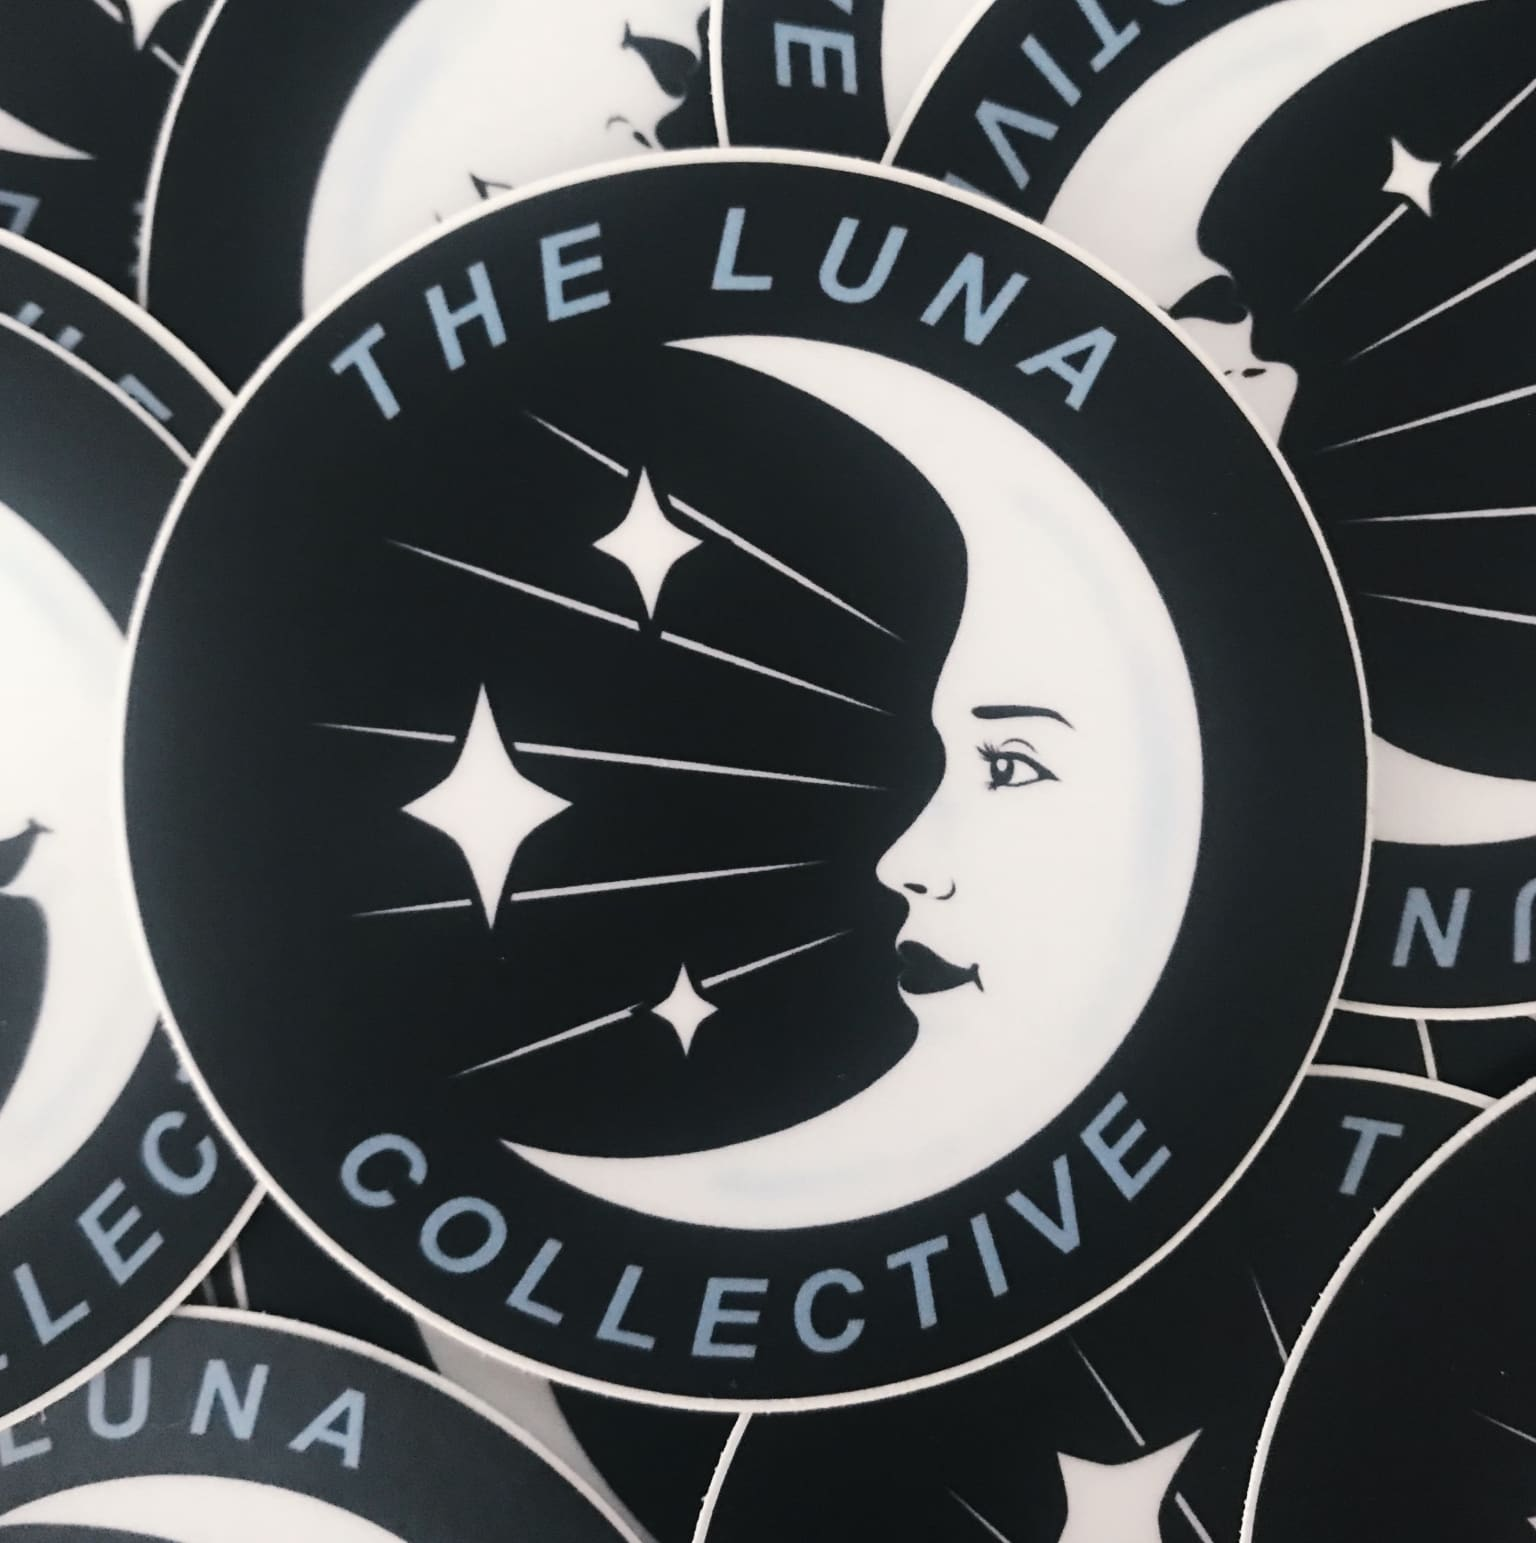 The Luna Collective